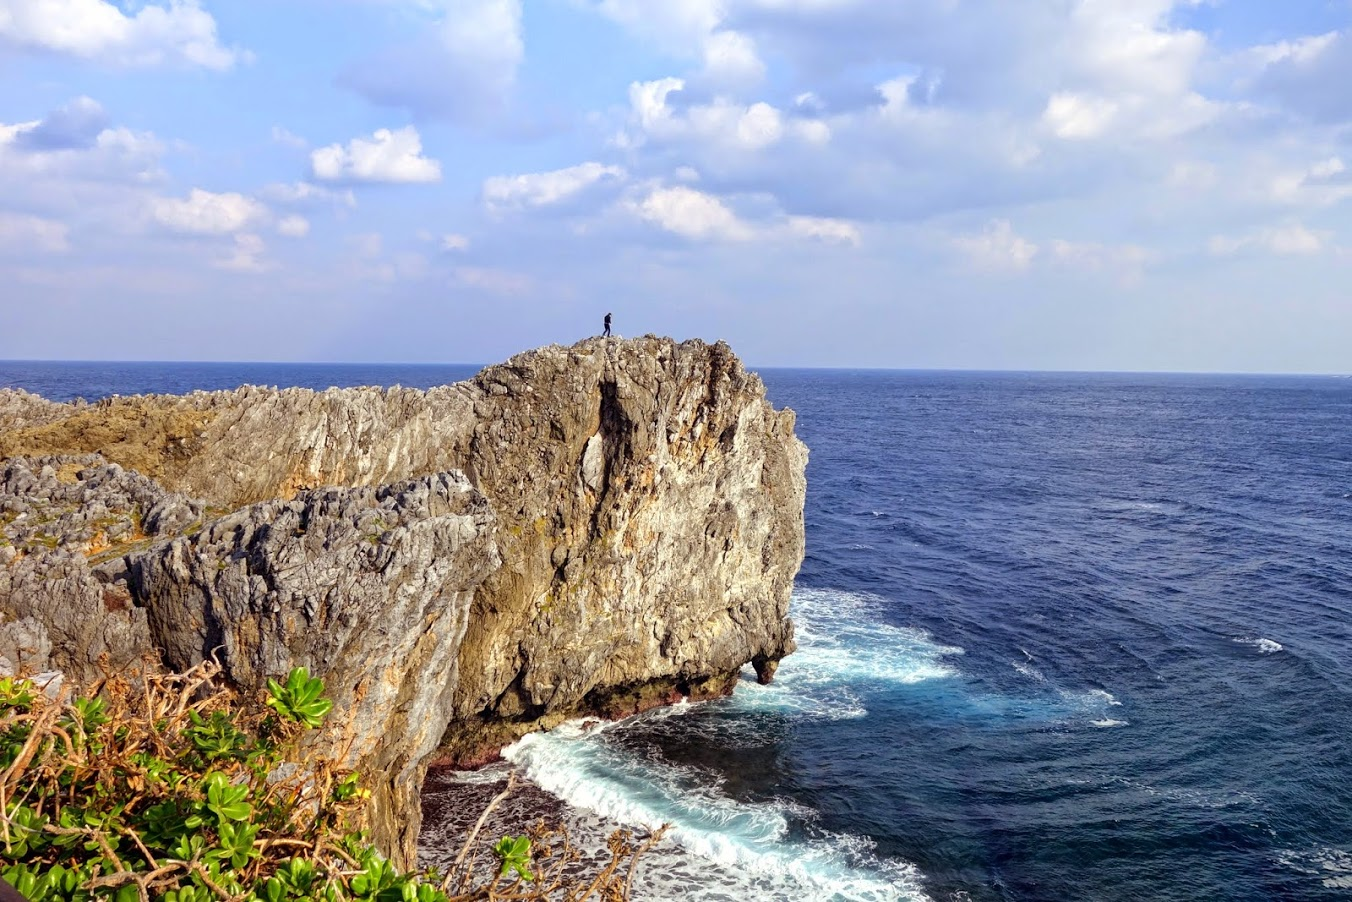 25 Things to Do in Okinawa When Visiting for the First Time